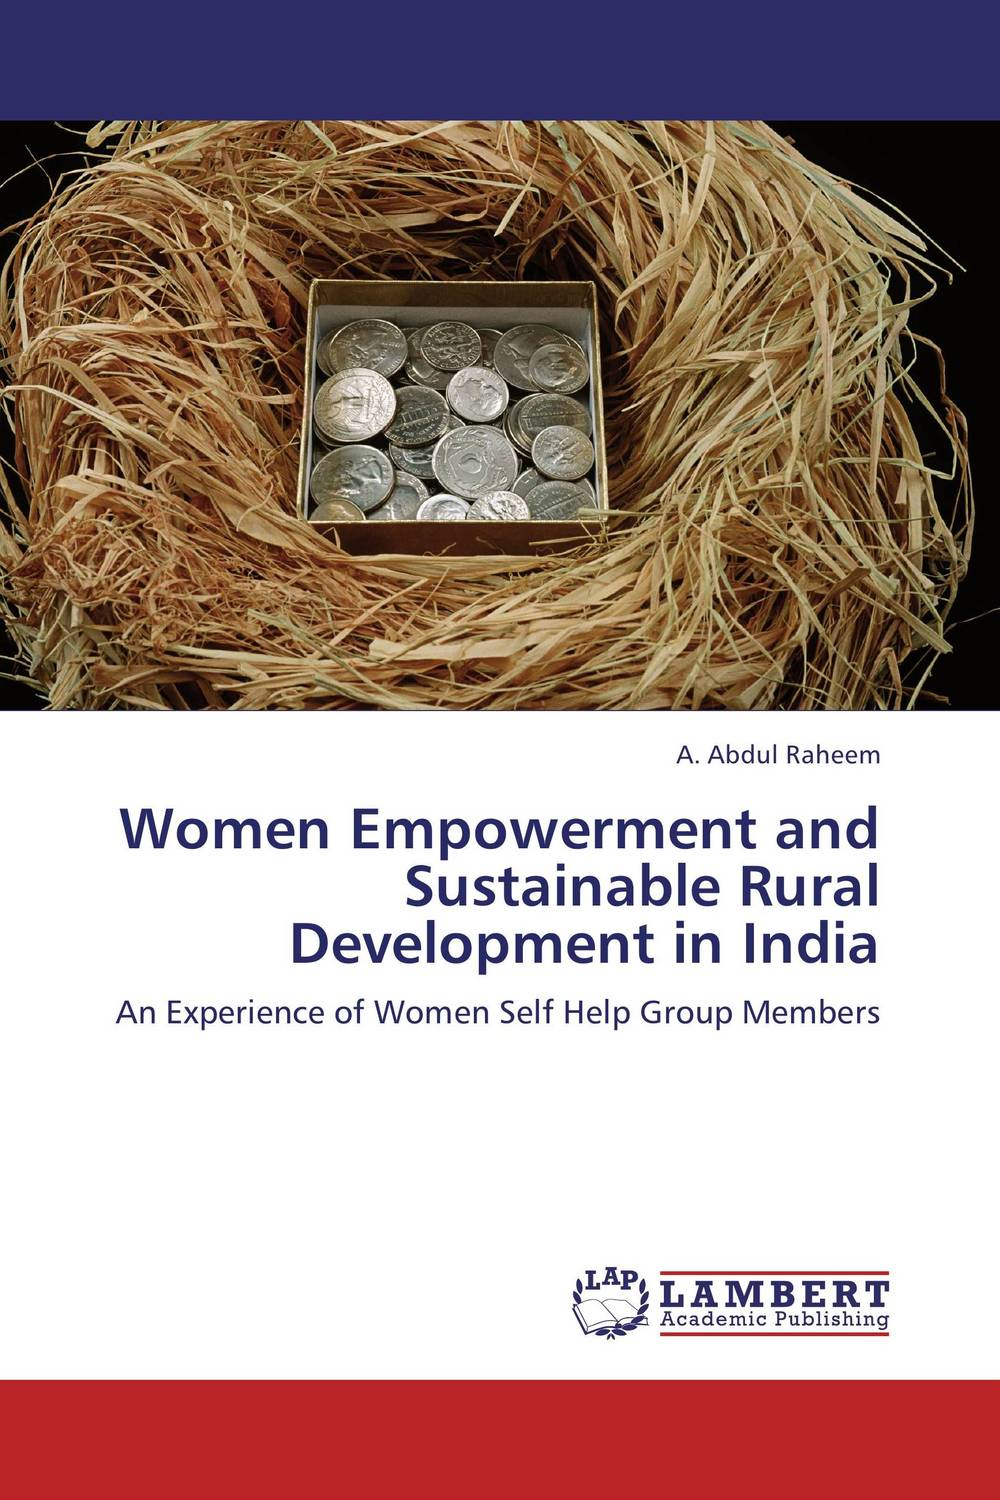 Women Empowerment and Sustainable Rural Development in India maxwell musingafi raphinos alexander chabaya and emmanuel dumbu groups and community mobilisation for development